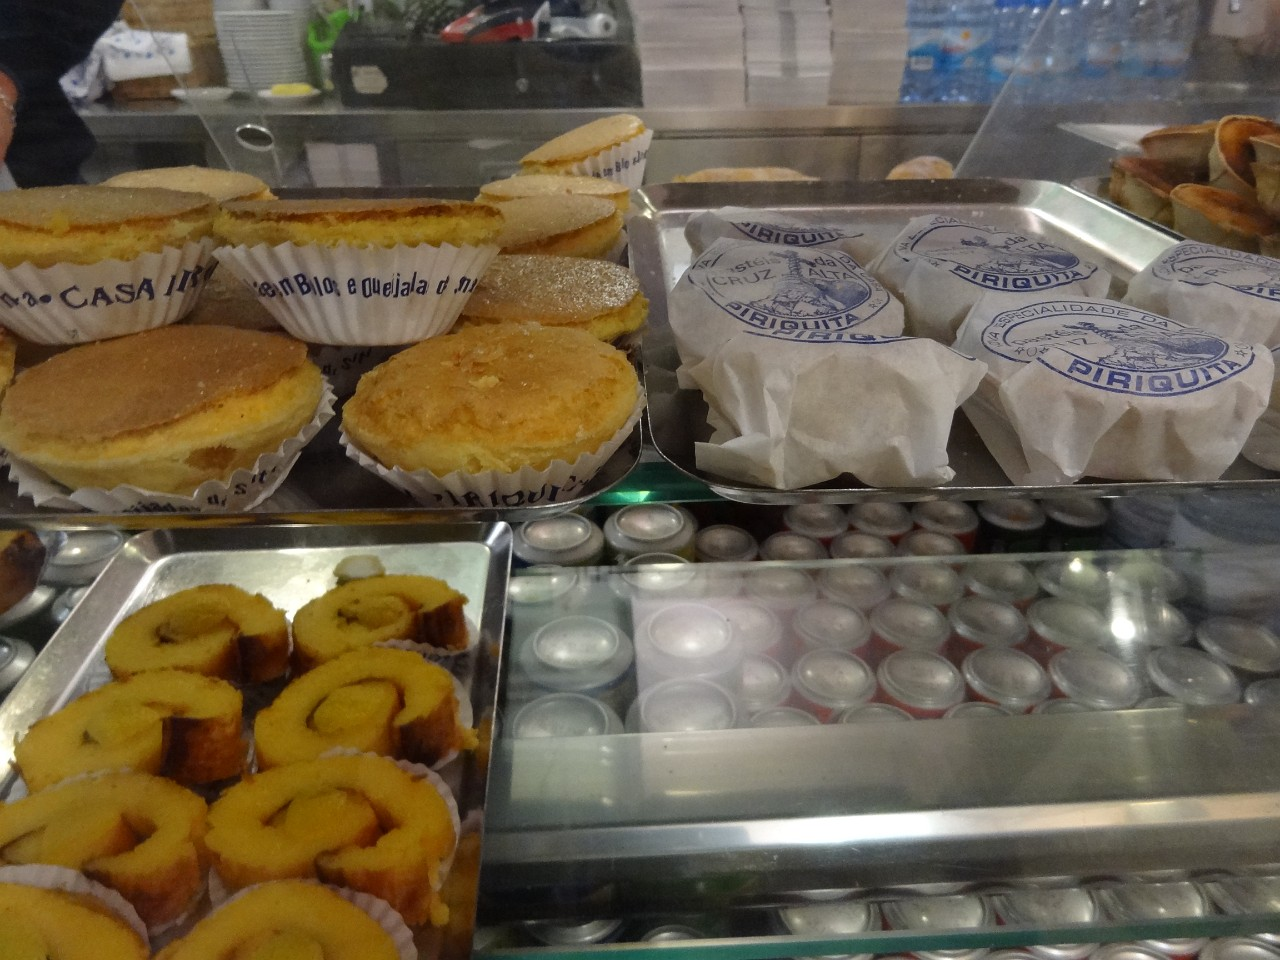 Sintra pastries